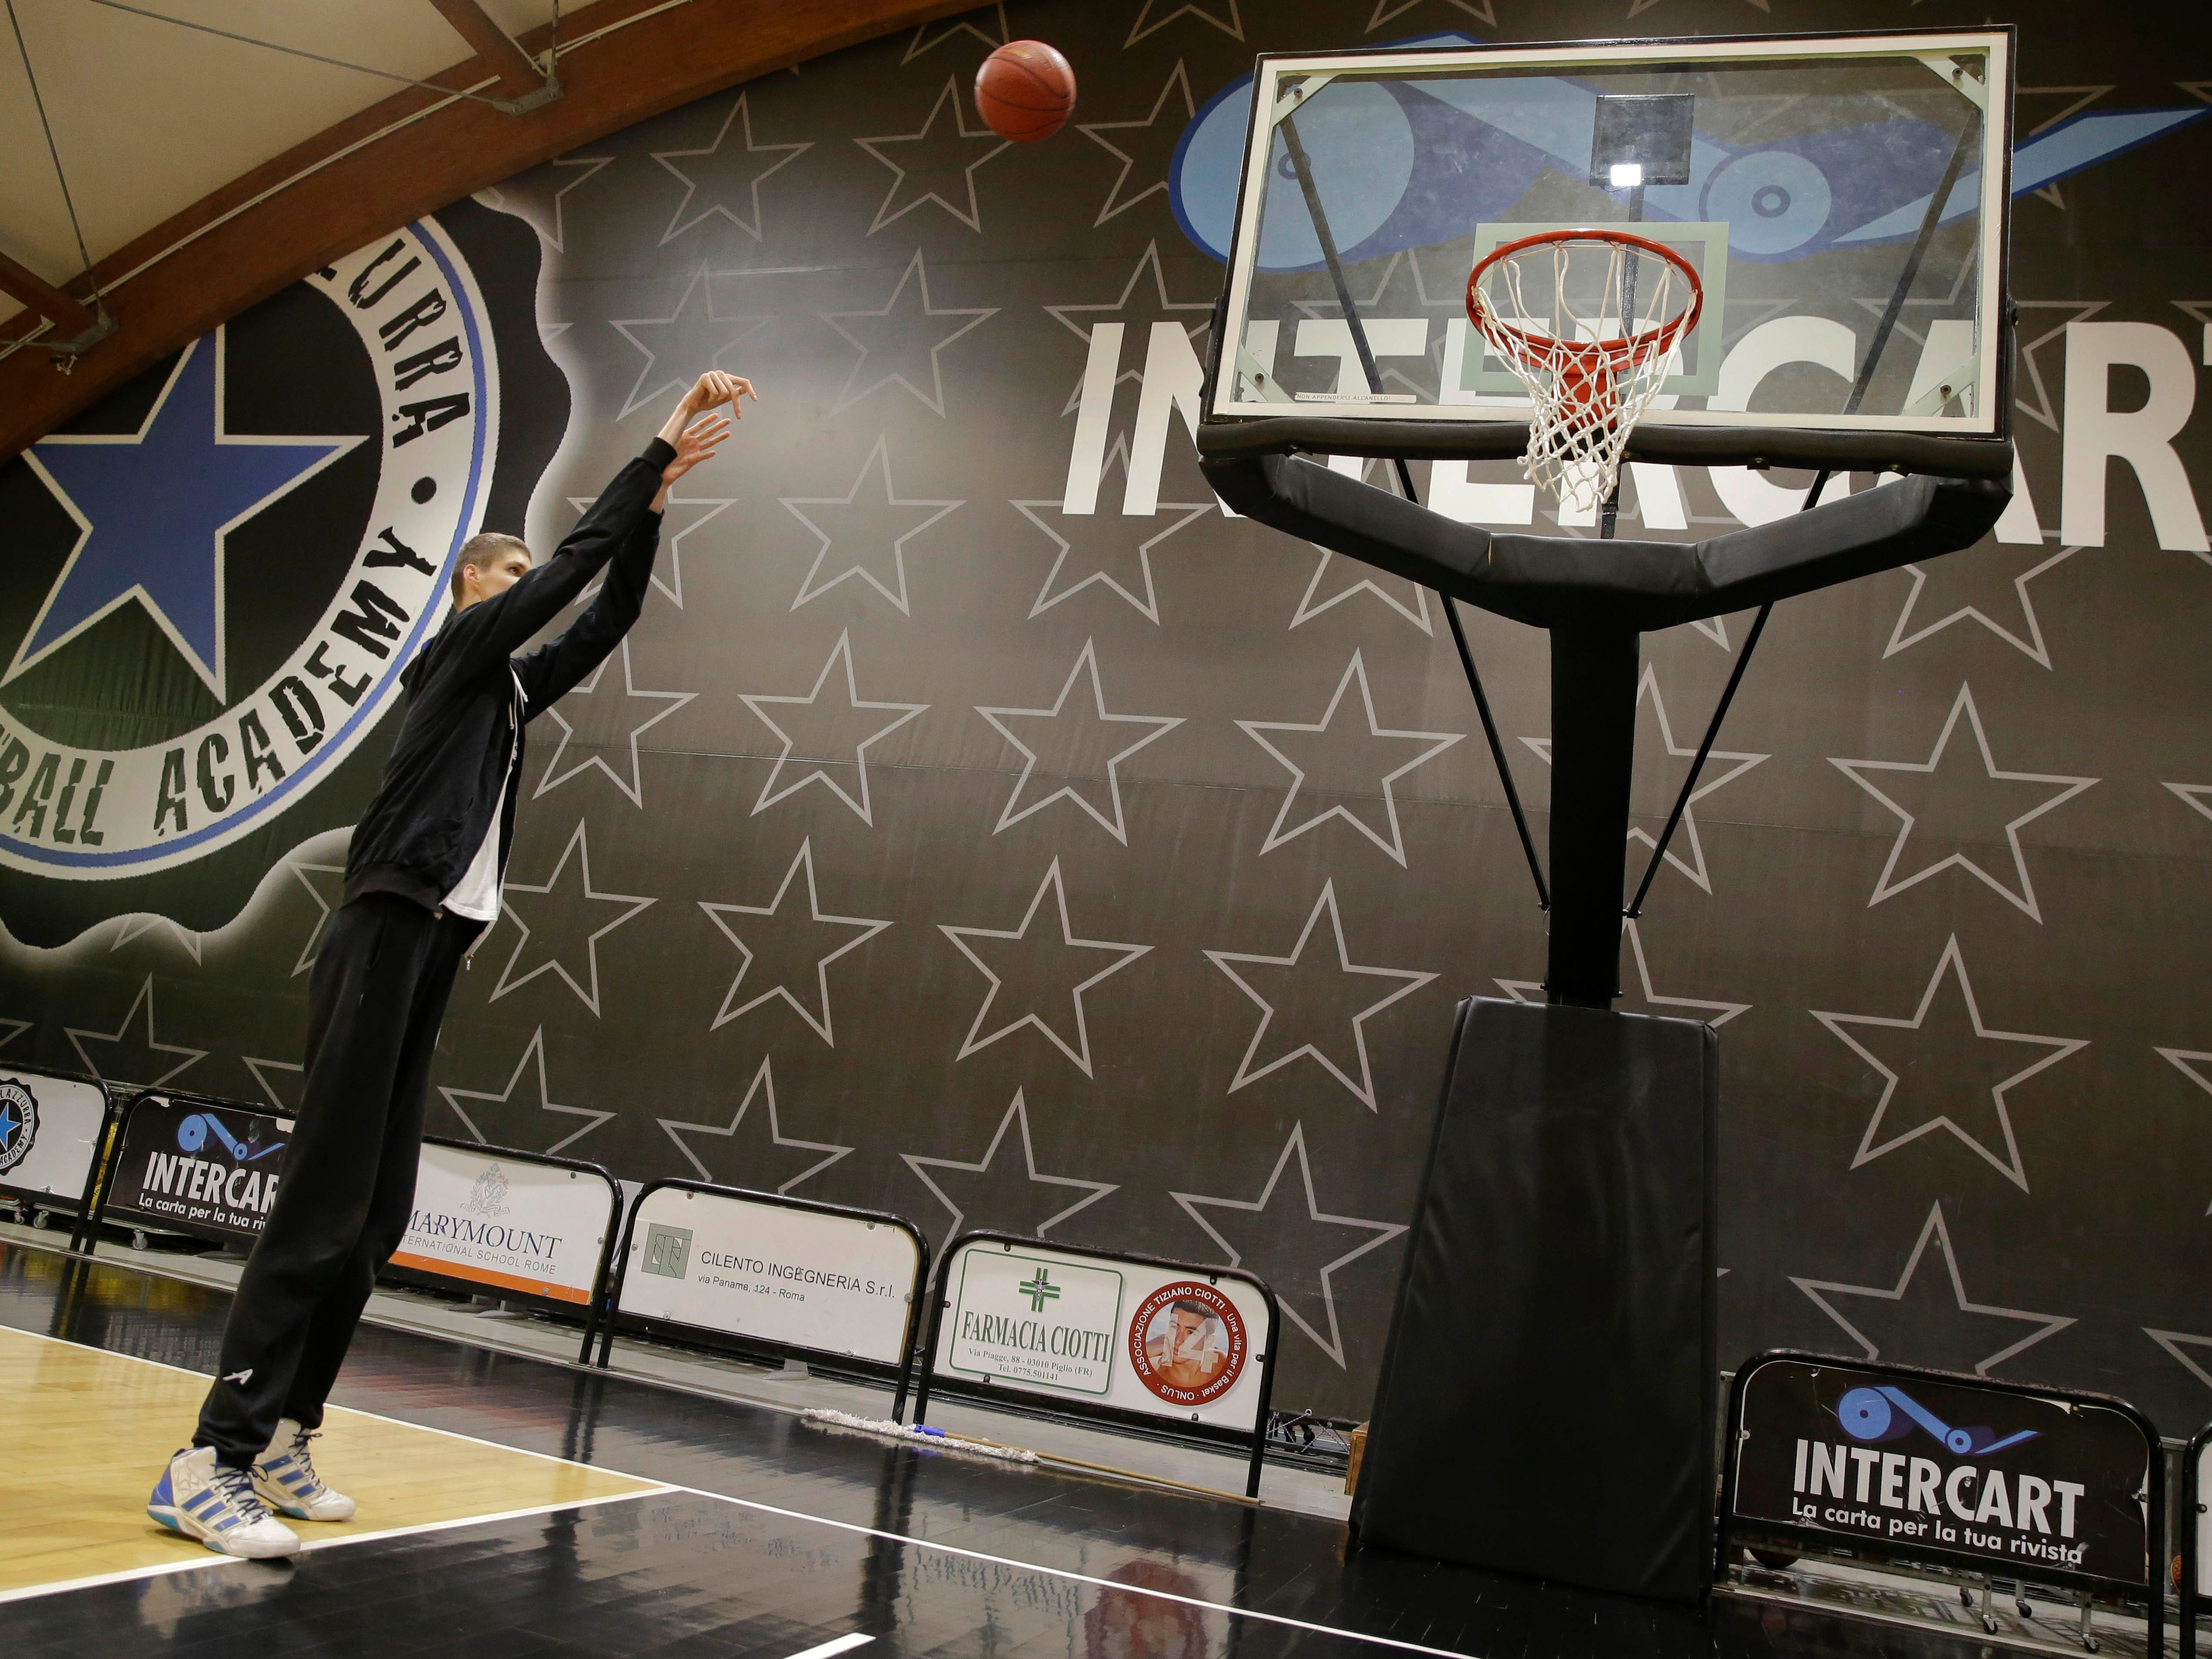 Spire Institute in Ohio will have the tallest player at HoopHall: 7-foot-7, 18-year-old Robert Bobroczkyi.